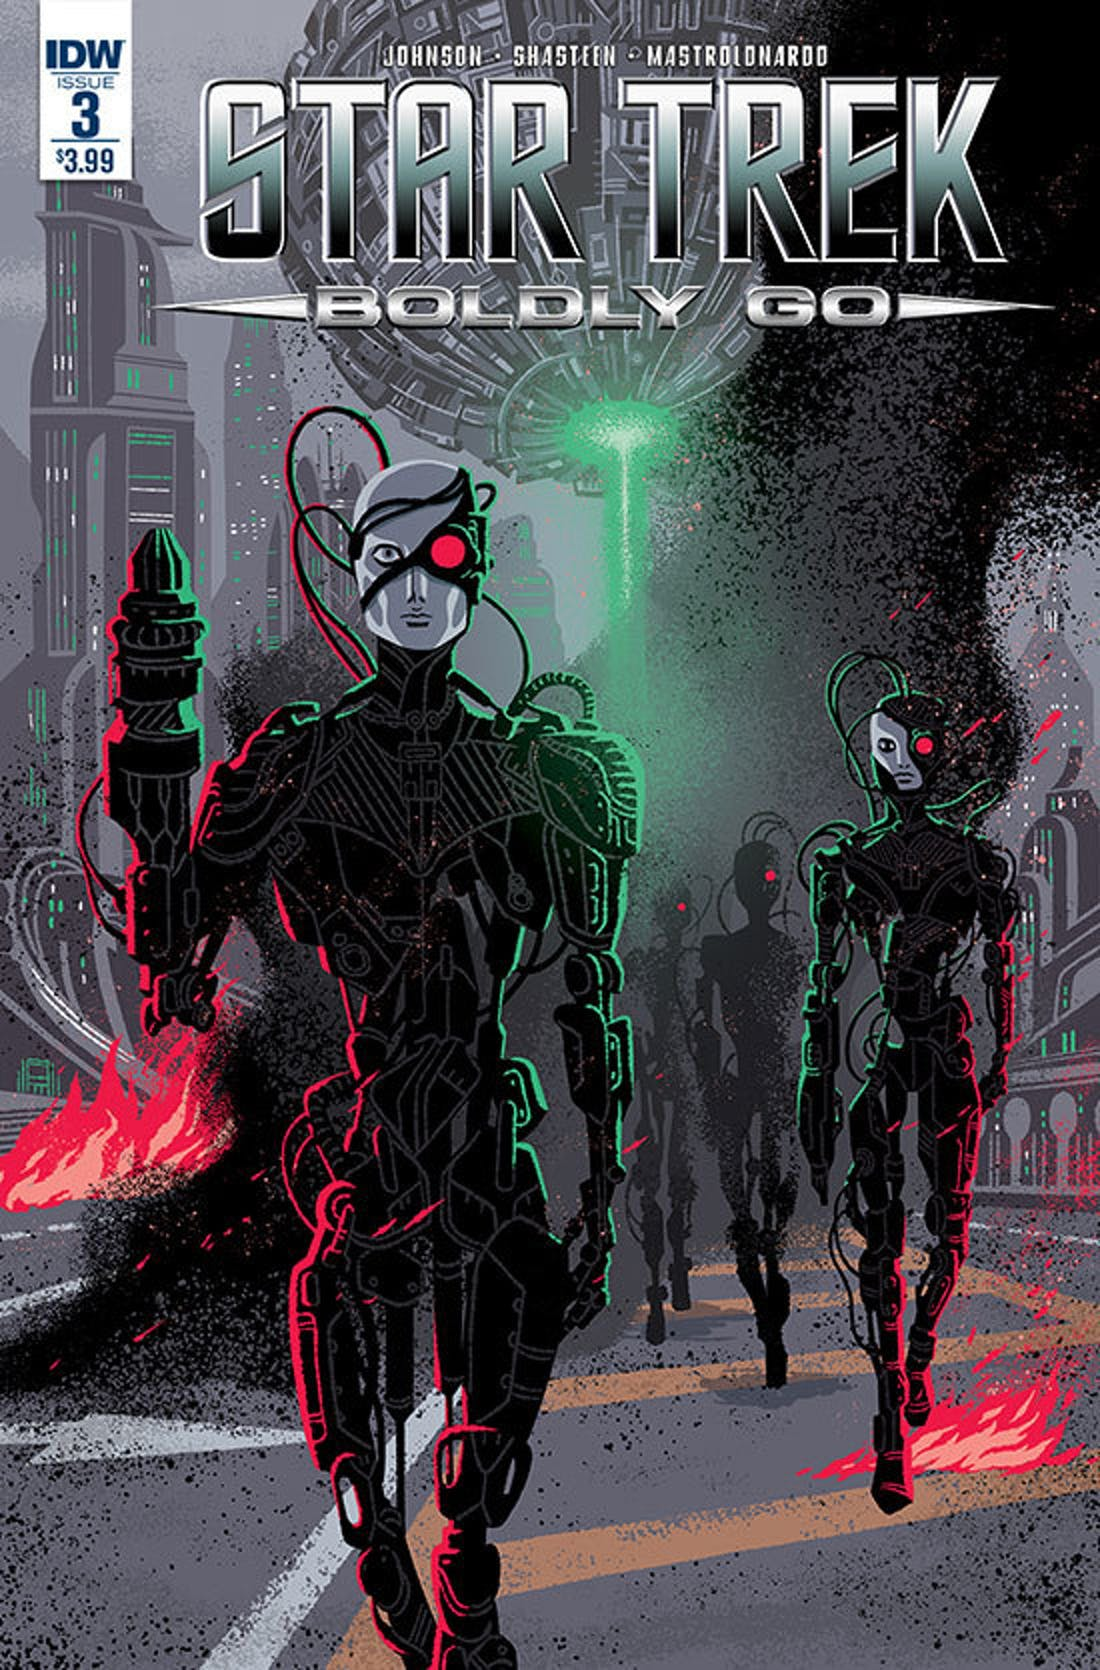 The Borg are back facing the original crew in the IDW comic series.